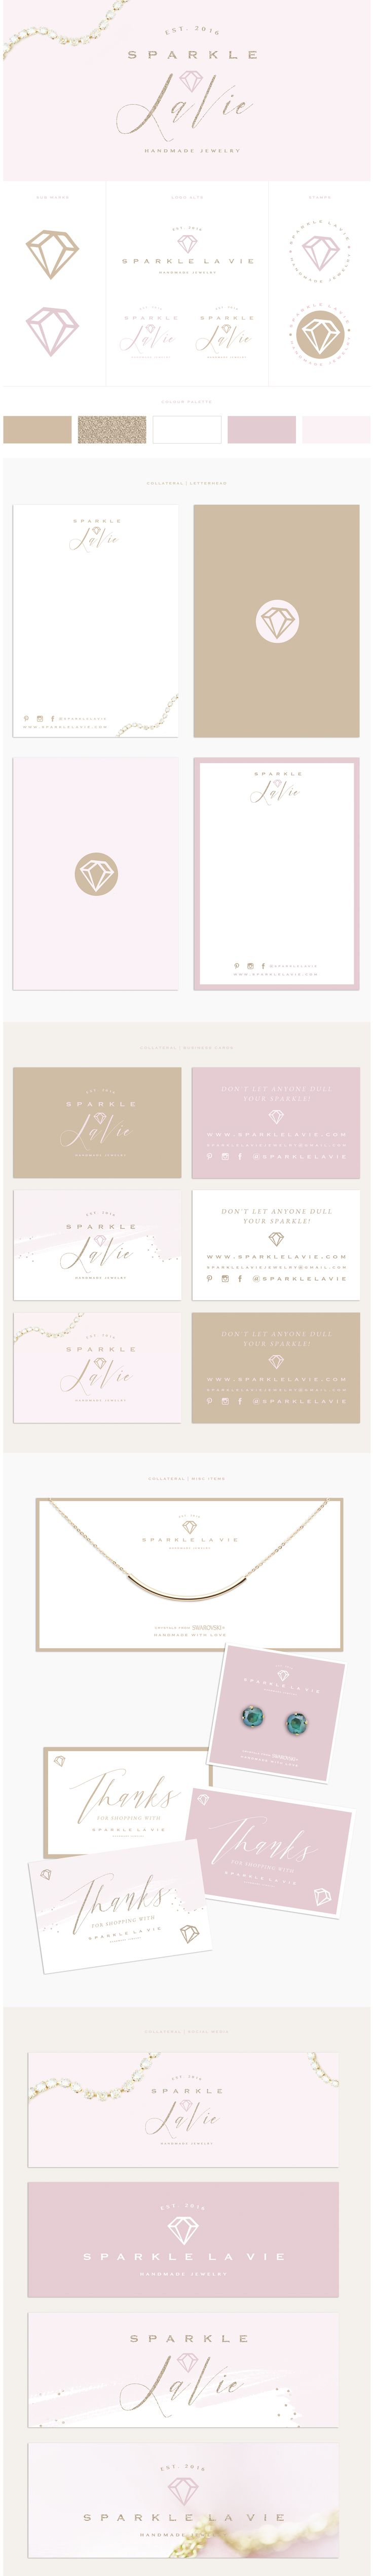 Custom Brand Design / Logo Design / Branding Board / www.brandmebeautiful.co.uk / enquiries@brandmebeautiful.co.uk / #logo #branding #design #pink #gold #glitter #purple #diamond #jewellery #jewelry